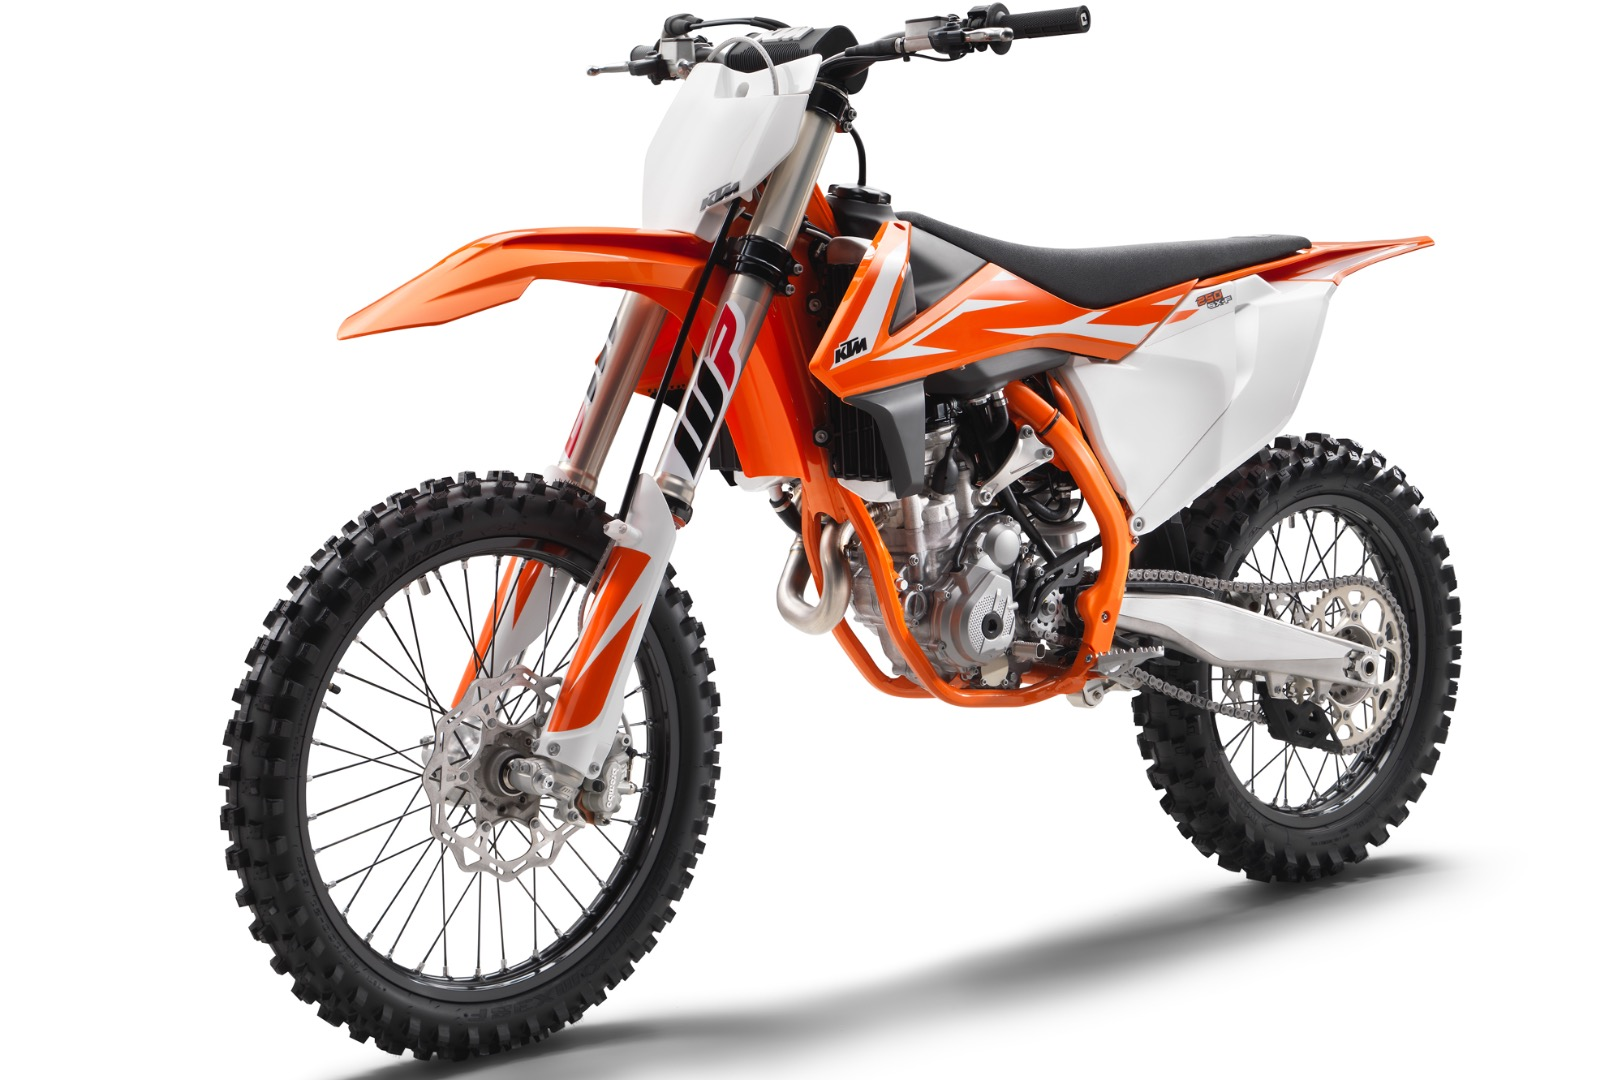 2018 ktm xcf 250. perfect 250 ktm announces 2018 sxf 250 in ktm xcf k